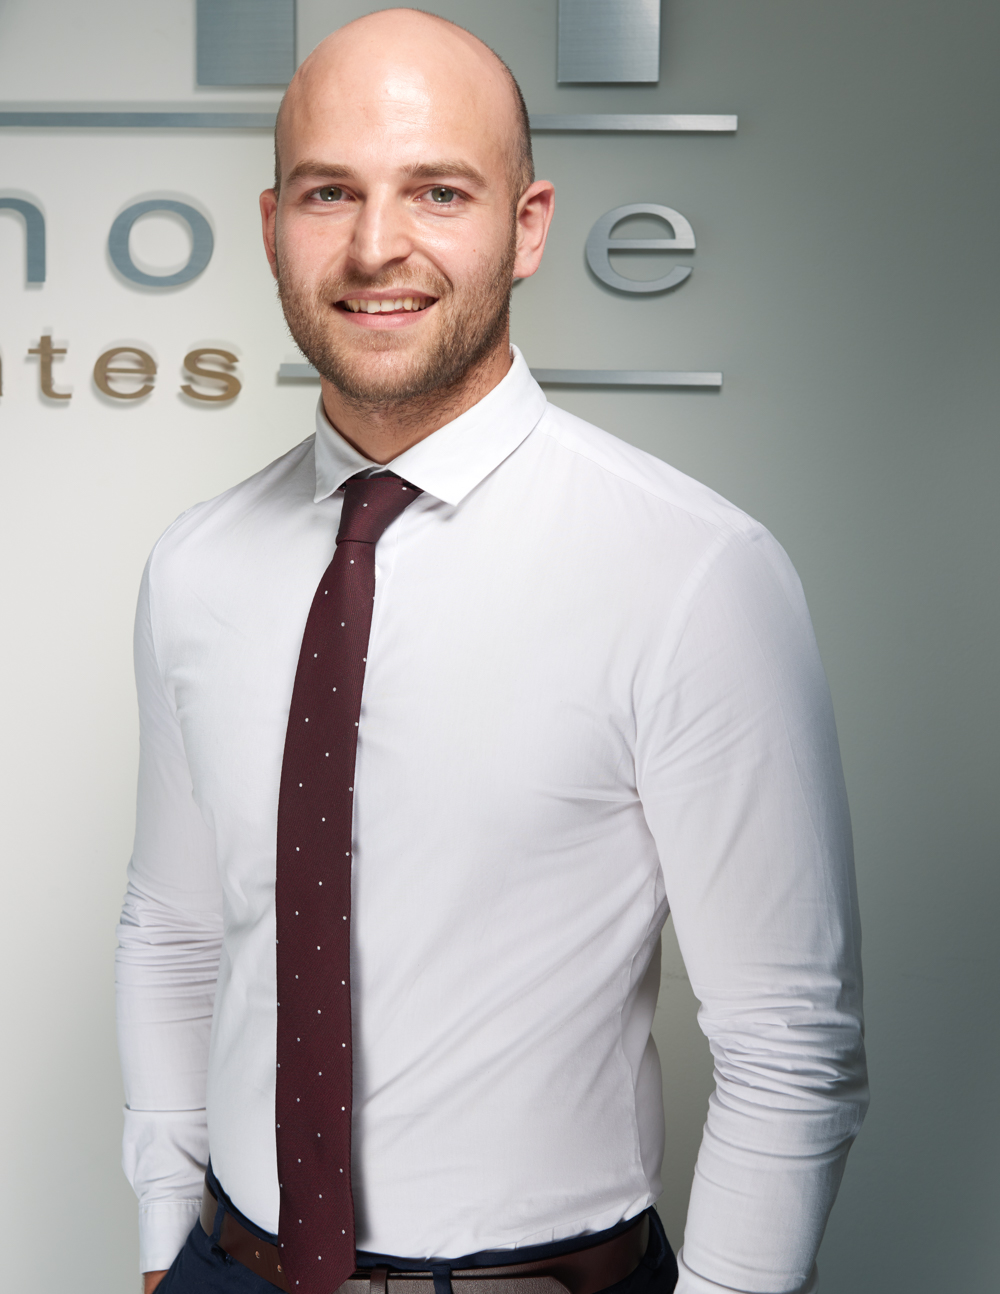 Alex Petros - Lettings Manager